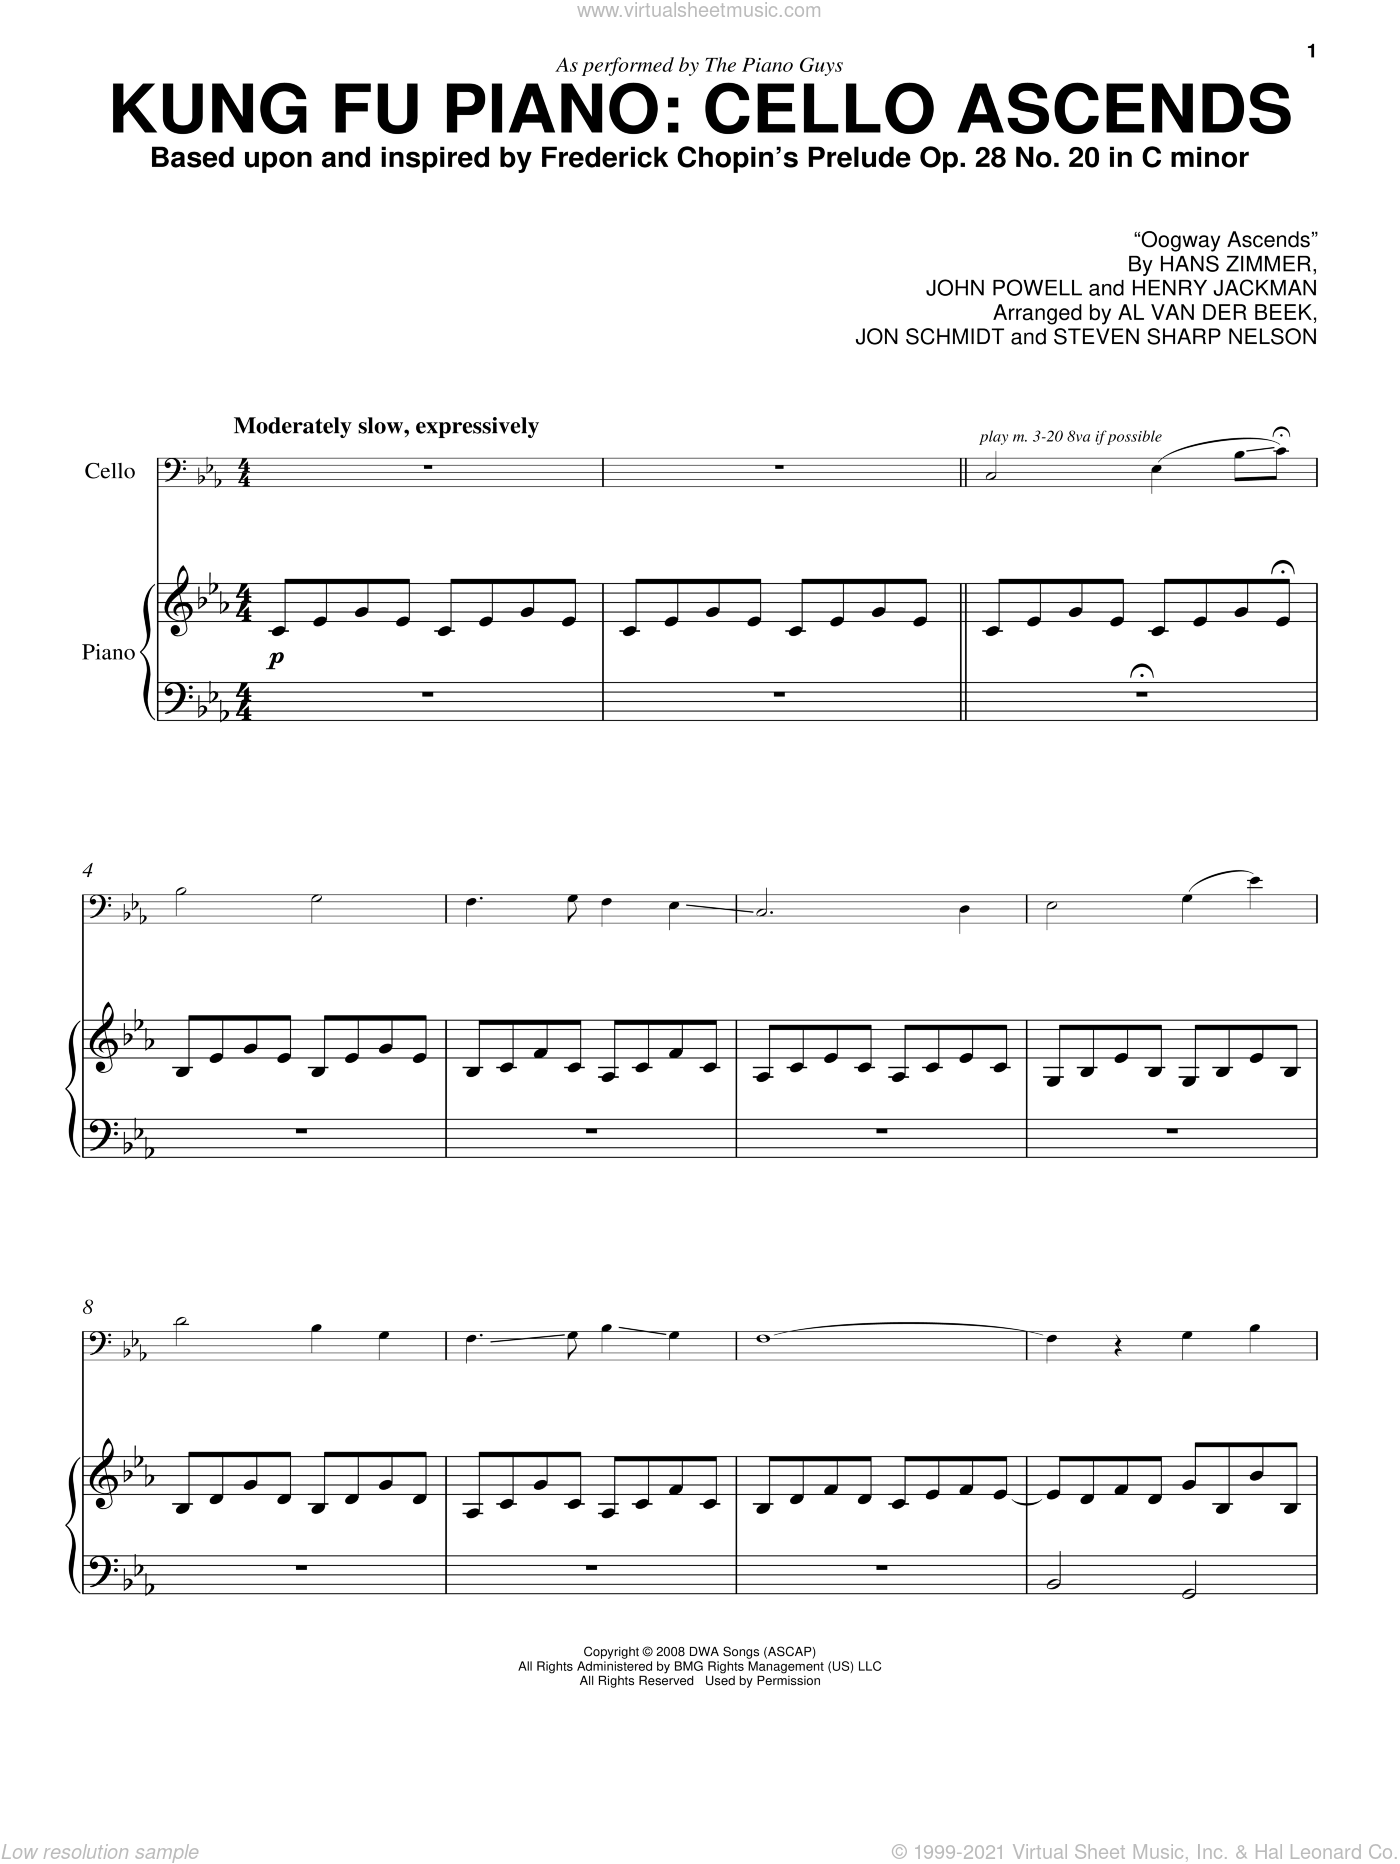 Kung Fu Piano: Cello Ascends sheet music for piano solo by Steven Sharp Nelson, The Piano Guys, Hans Zimmer, Henry Jackman, John Powell and Jon Schmidt. Score Image Preview.